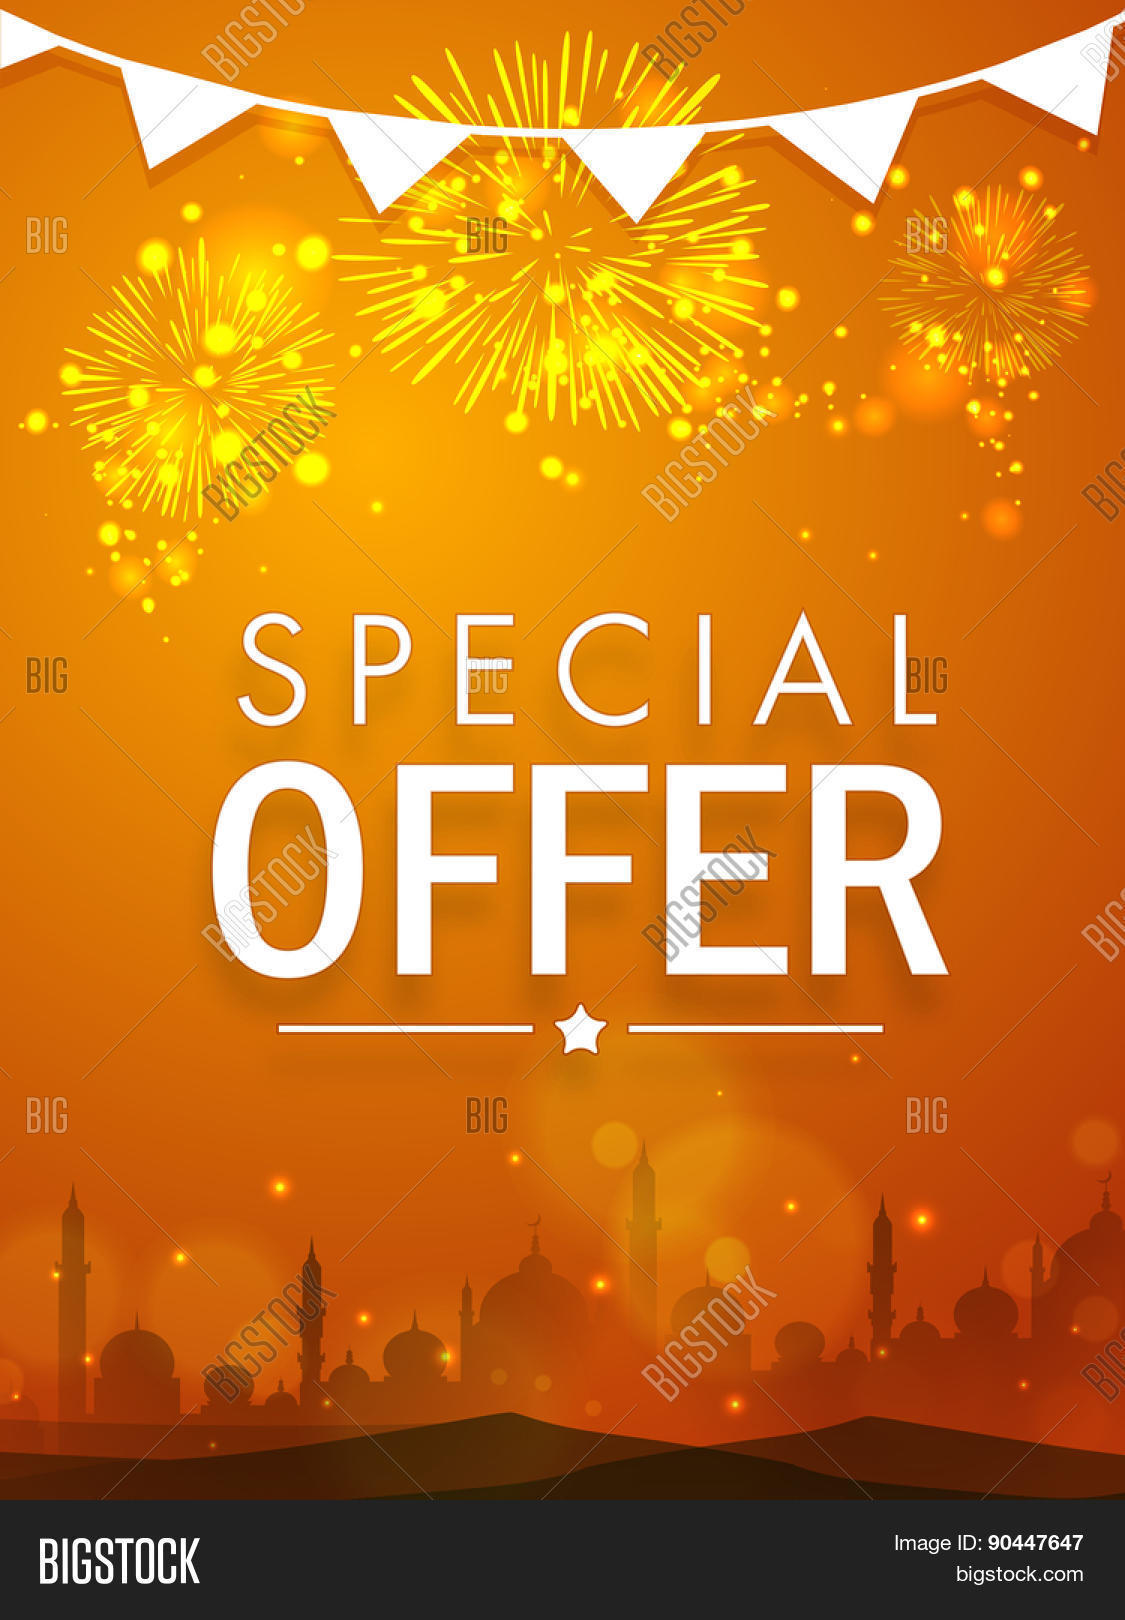 beautiful special offer poster banner or flyer decorated beautiful special offer poster banner or flyer decorated shiny fireworks and mosque silhouette